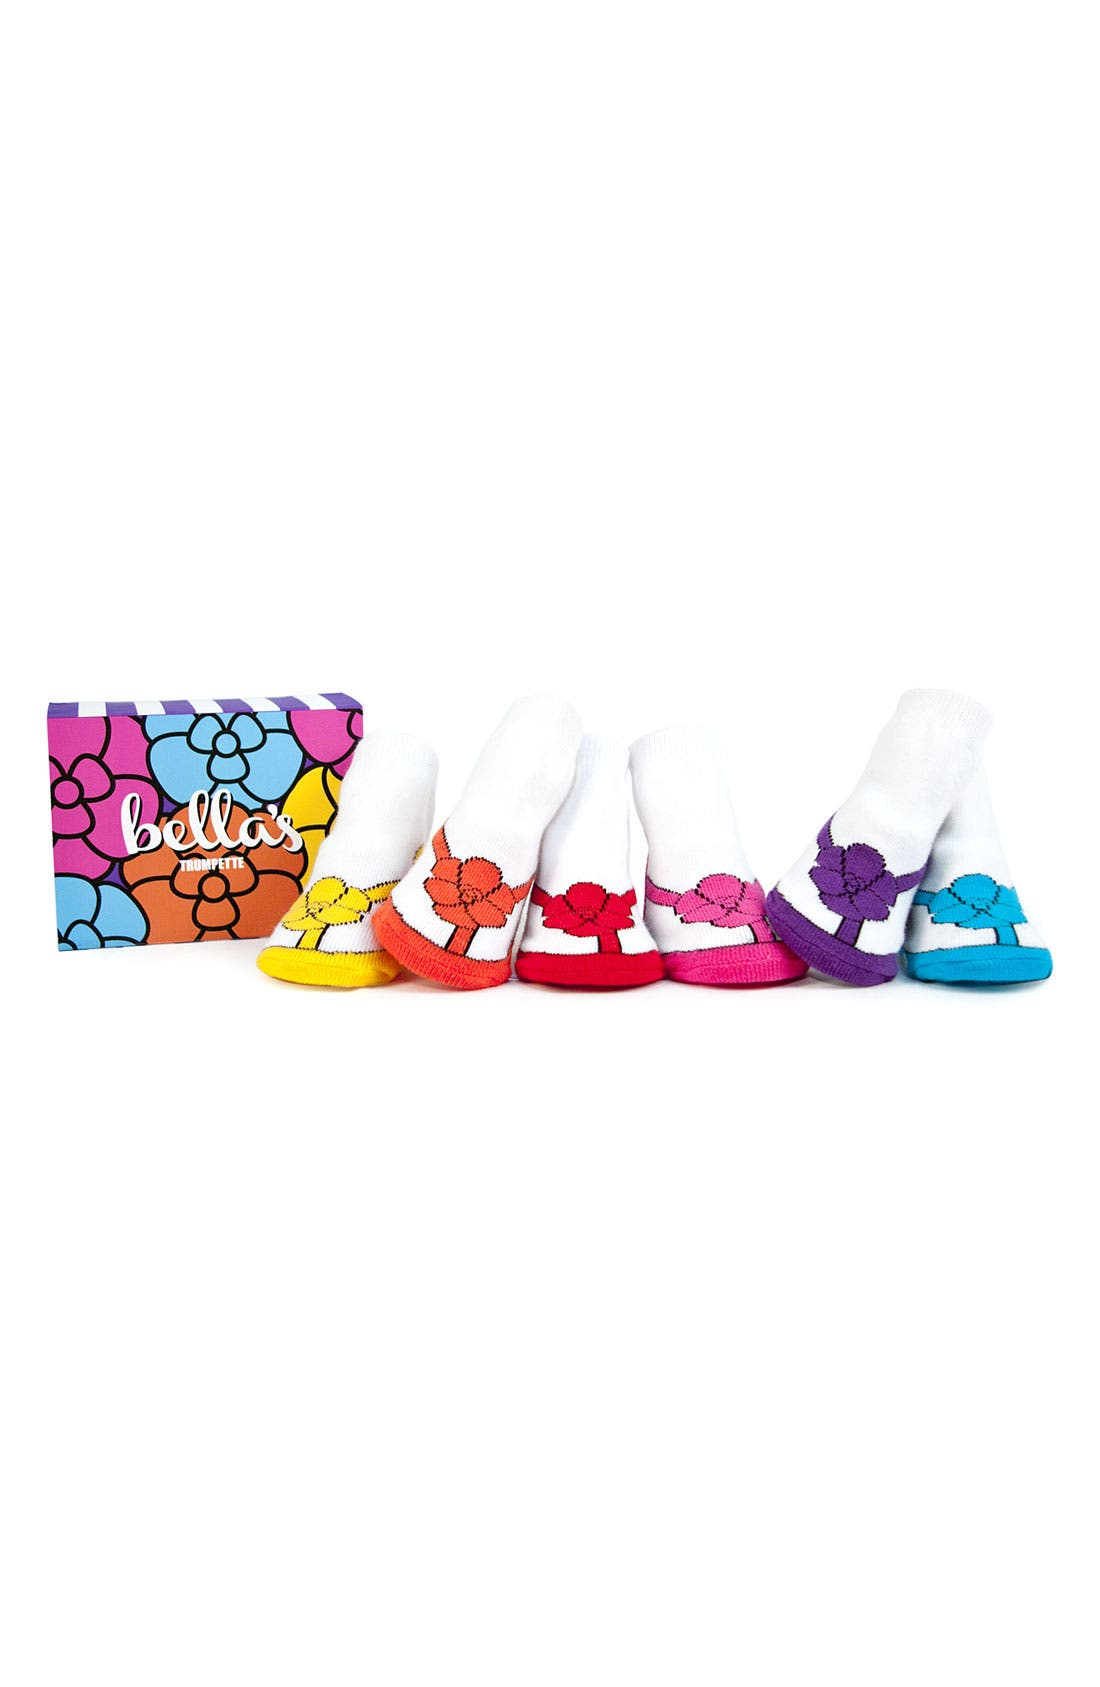 Alternate Image 1 Selected - Trumpette 'Bella's' Socks Gift Set (Baby Girls)